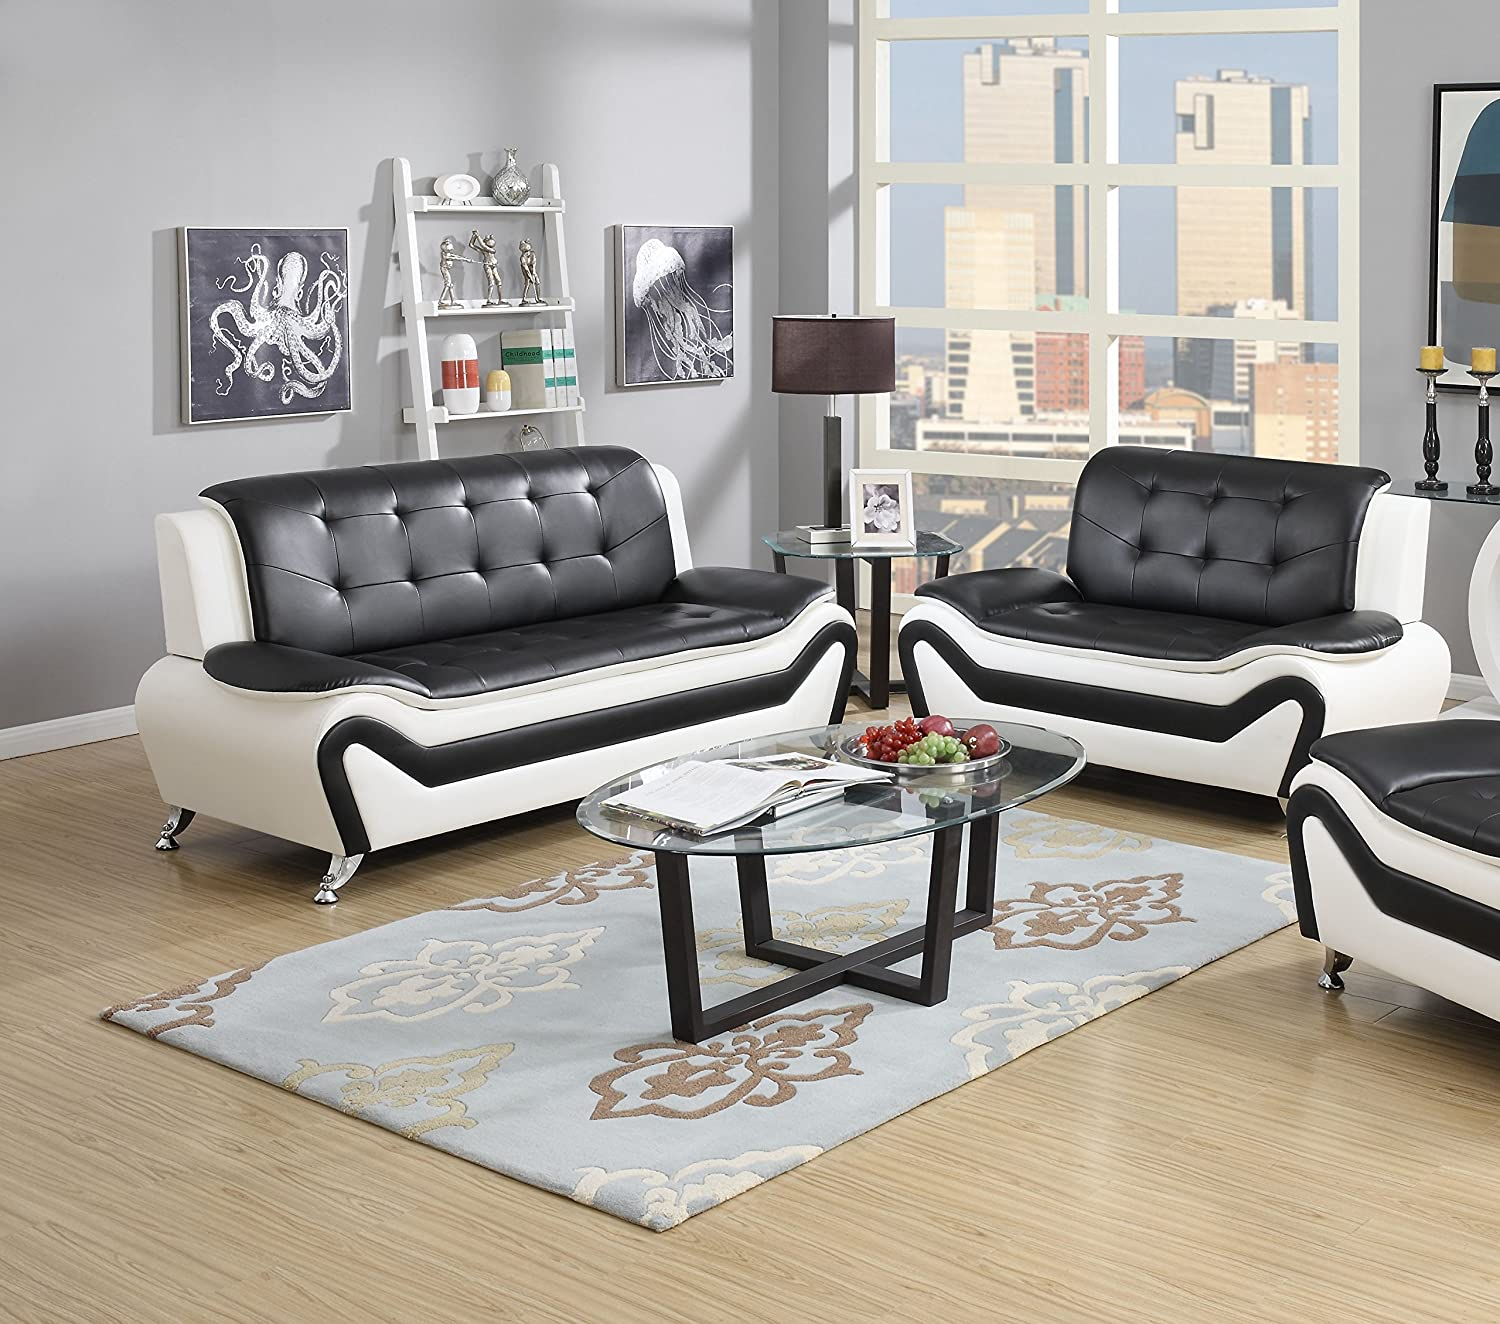 Amazon.com: US Pride Furniture 2 Piece Modern Bonded Leather Sofa Set With  Sofa And Loveseat, White/Black: Kitchen U0026 Dining